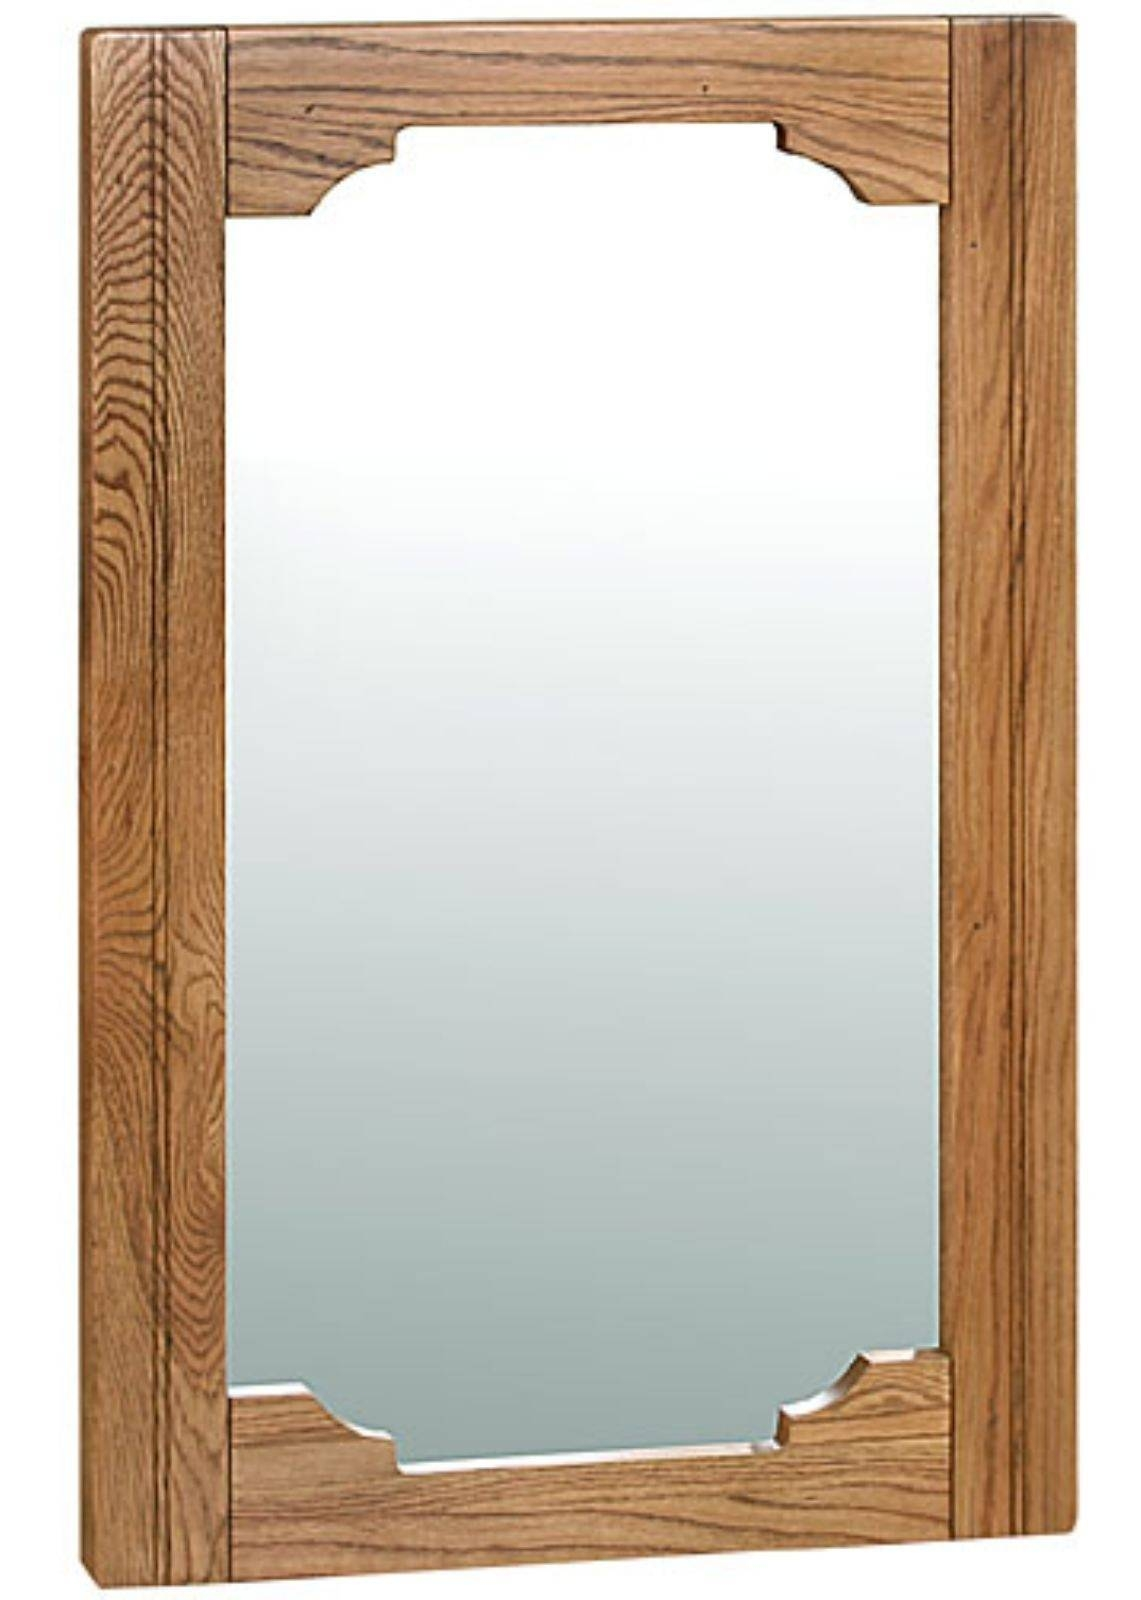 Toulouse Antique Oak Large Wall Mirror | Oak Furniture Solutions within Oak Wall Mirrors (Image 11 of 15)